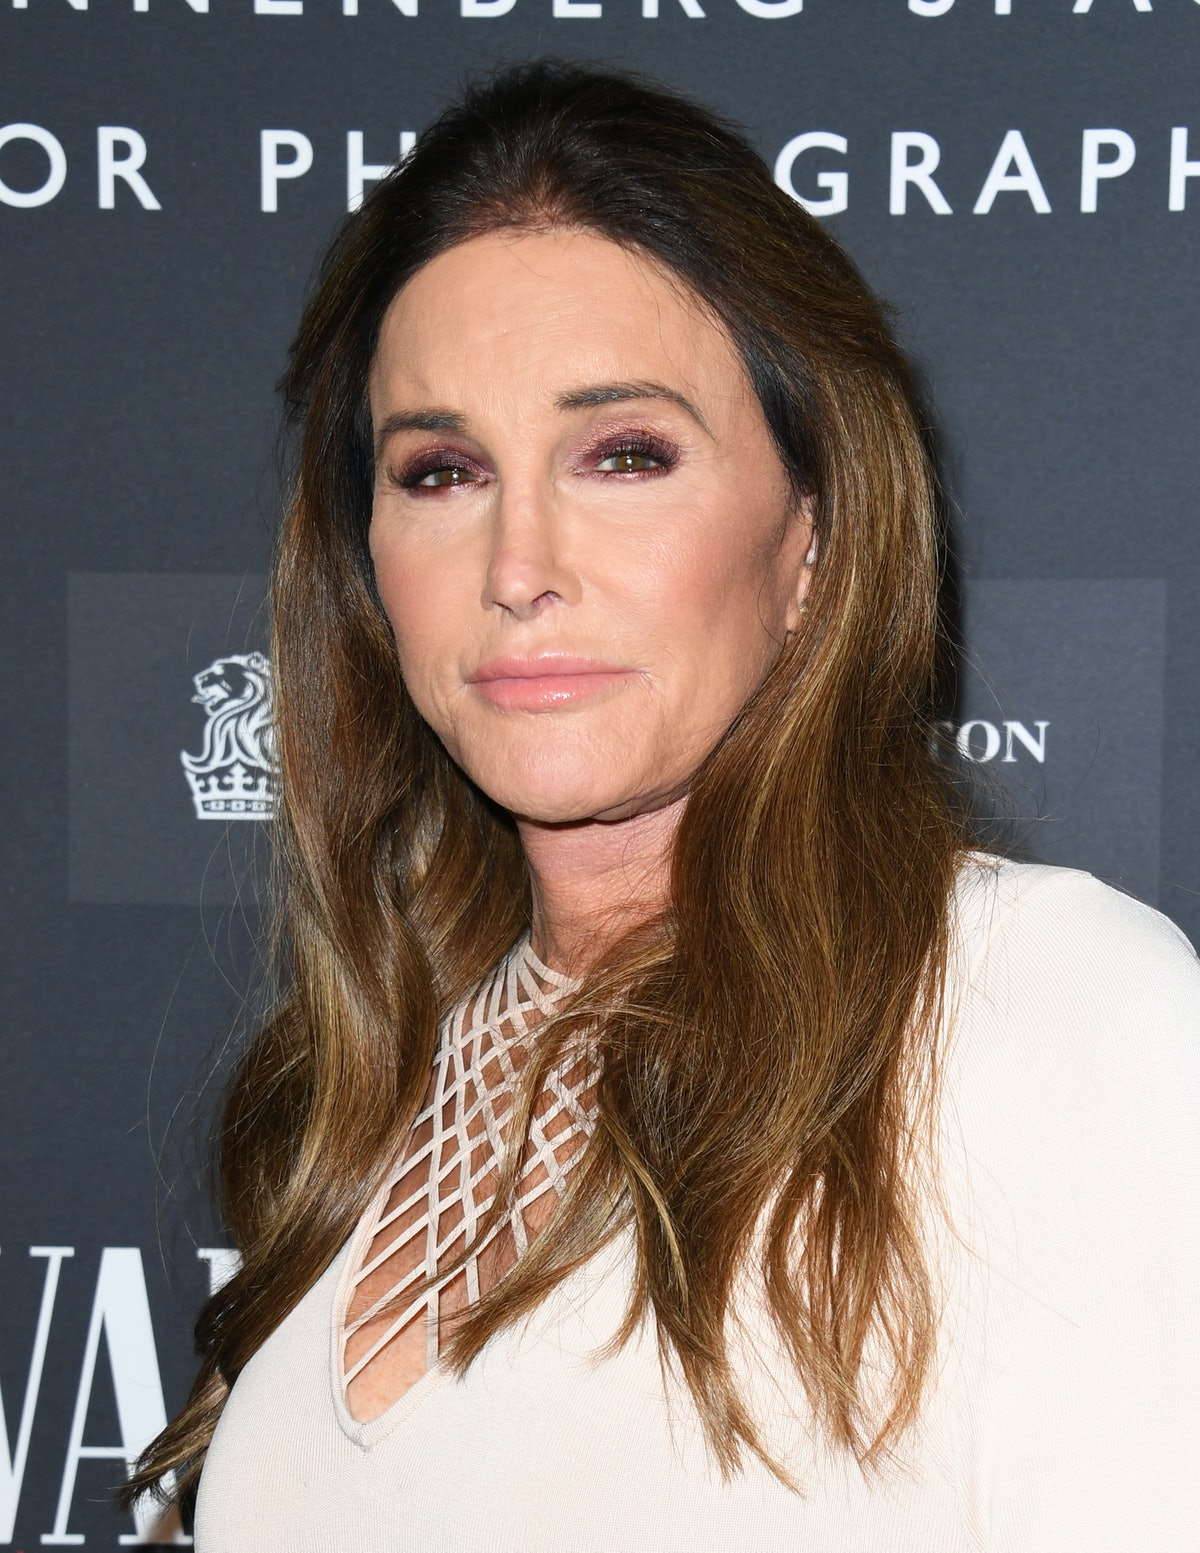 Caitlyn Jenner steps out for a red carpet event.